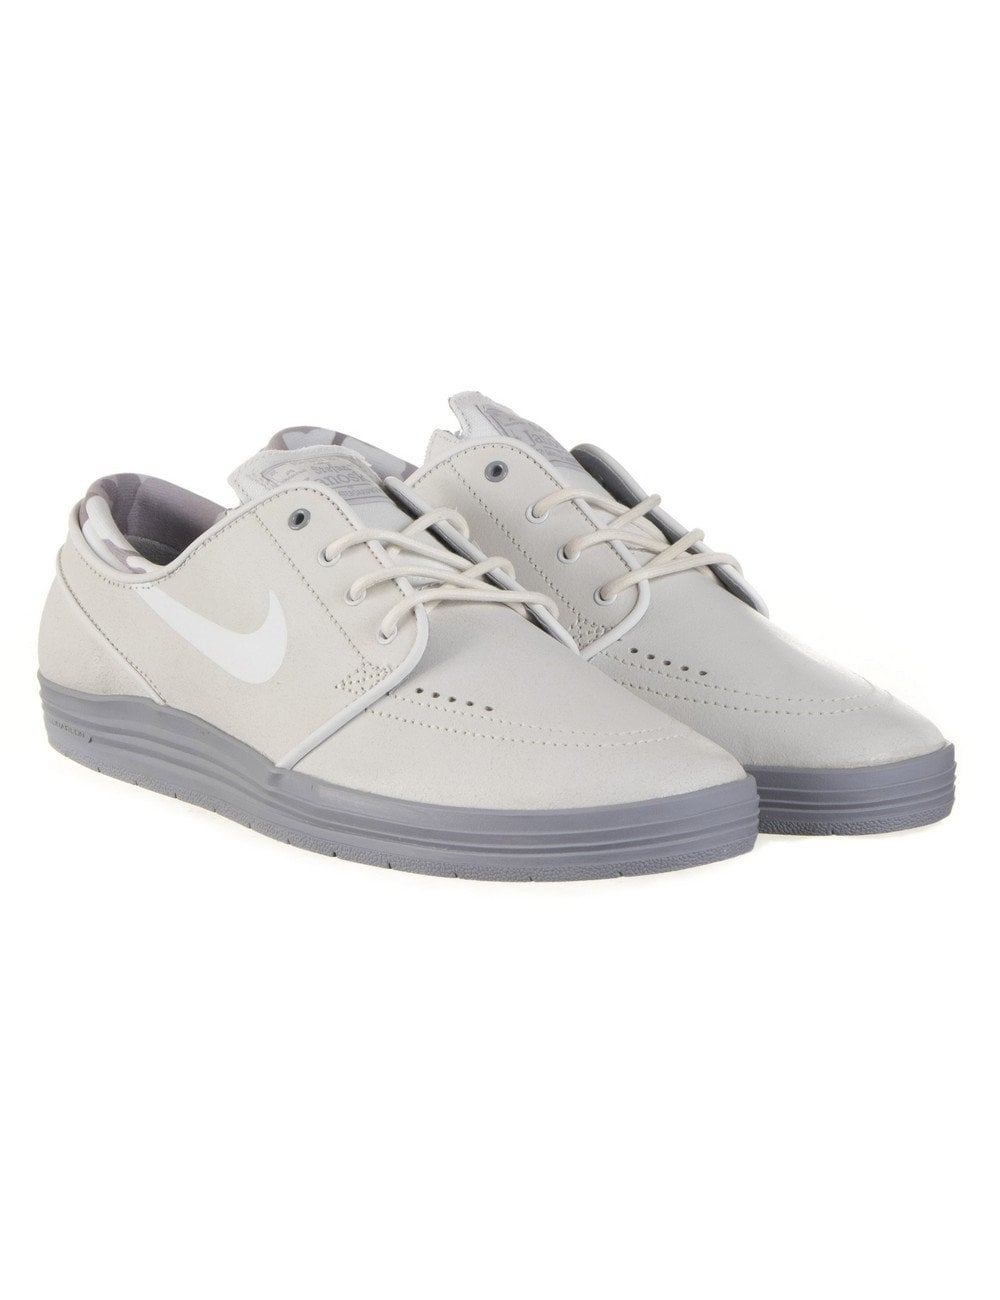 737e69da5937 Nike SB Lunar Stefan Janoski Shoes - Summit White - Footwear from ...